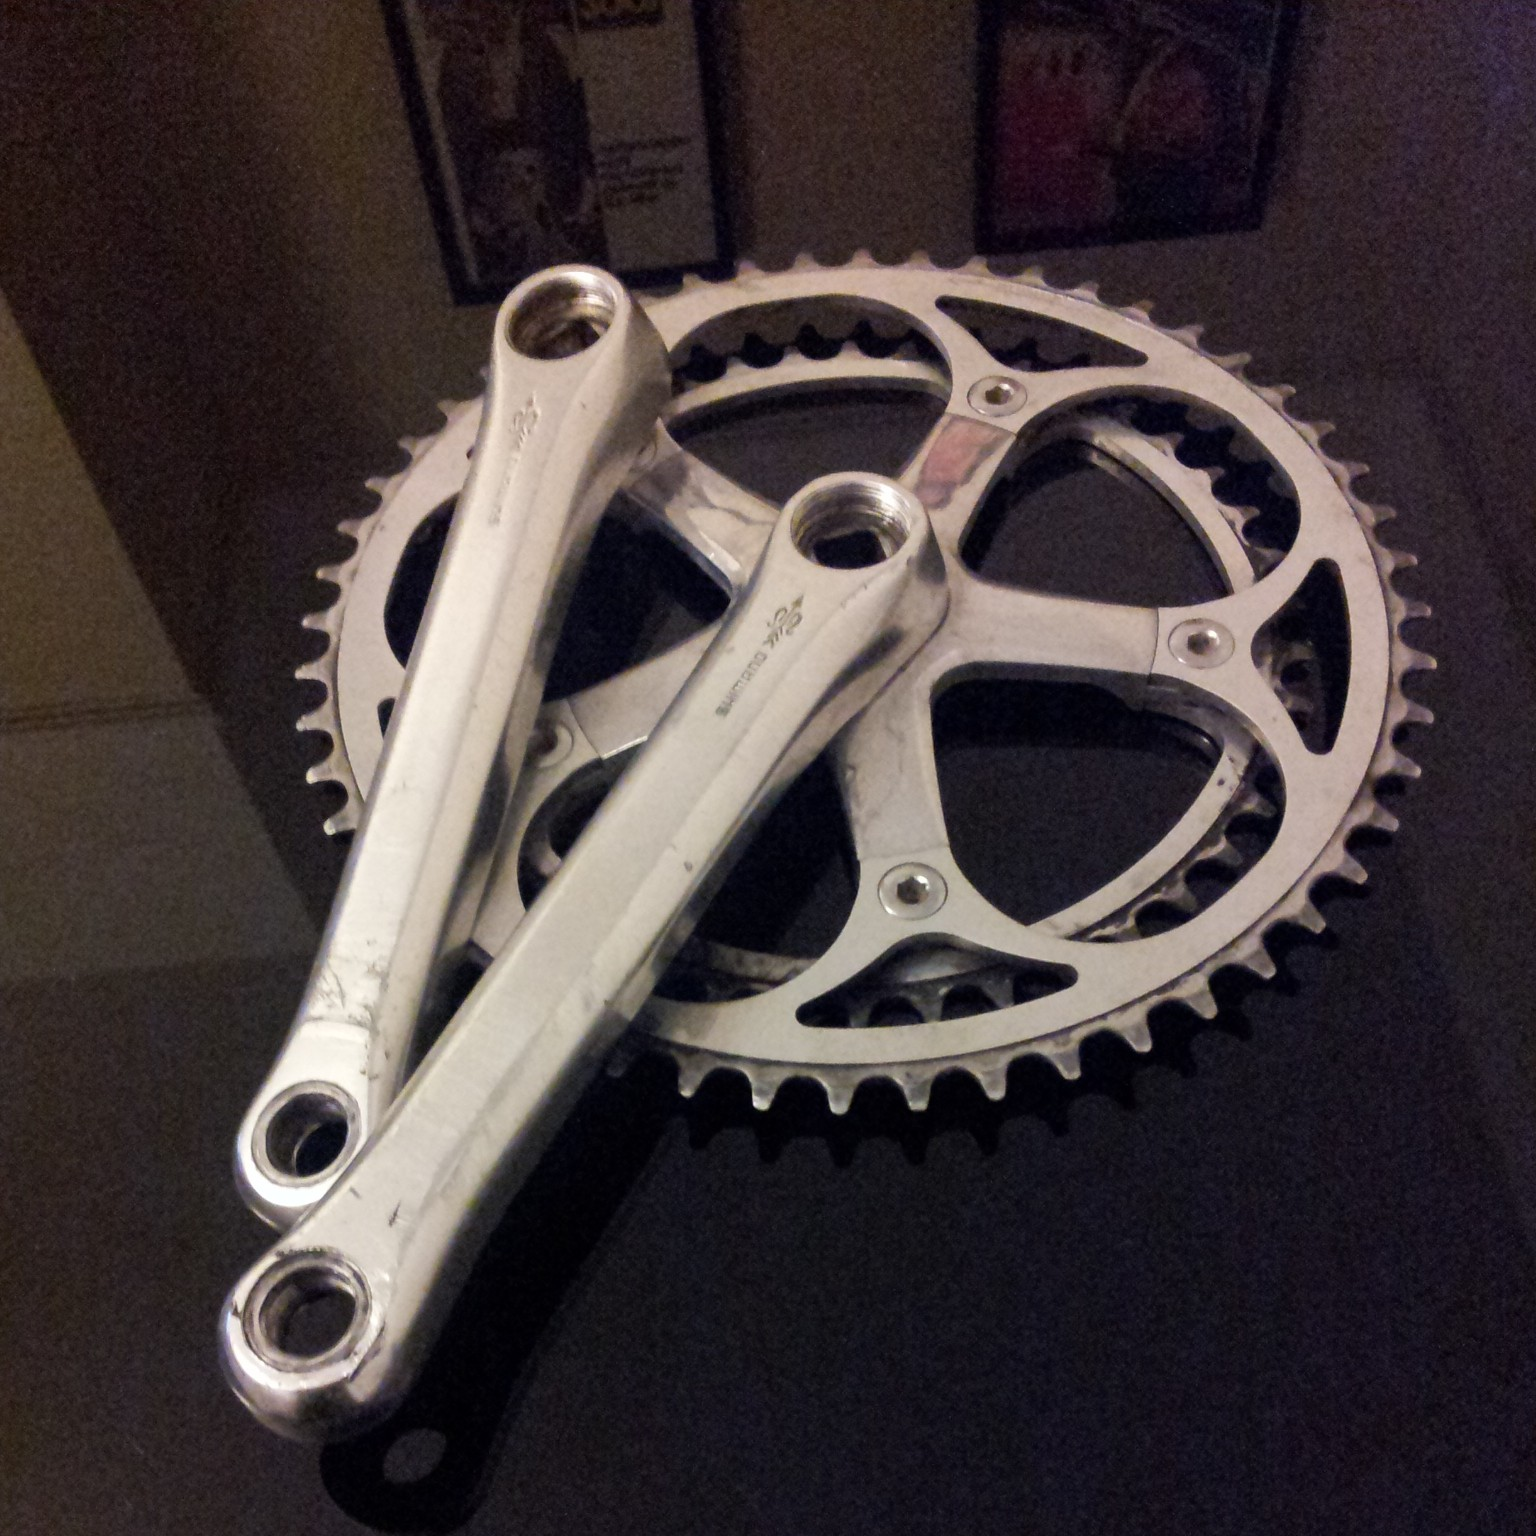 Shimano Golden Arrow FC-S125 Crankset